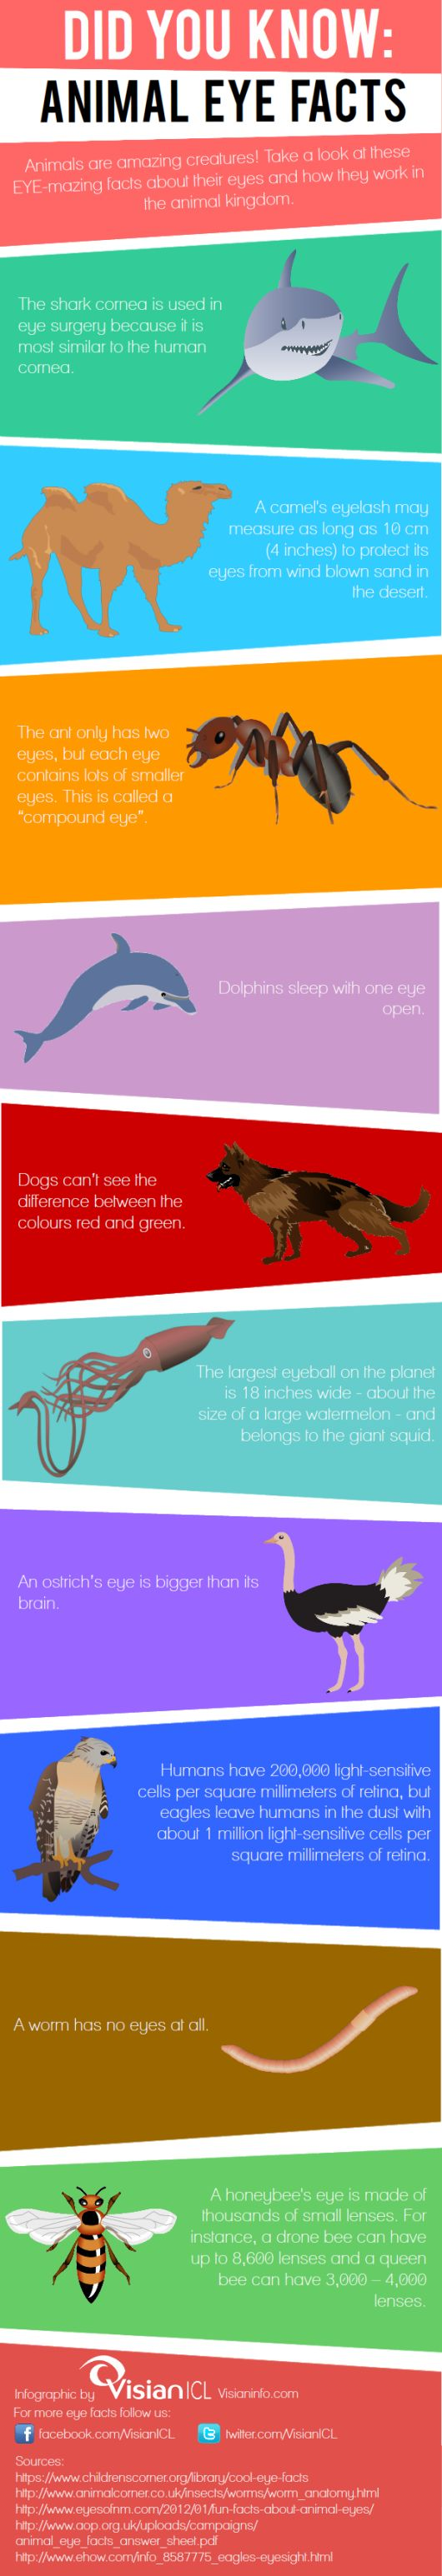 ANIMAL EYES: Take a look at this info-graphic we put together of our top 10 animal EYE facts